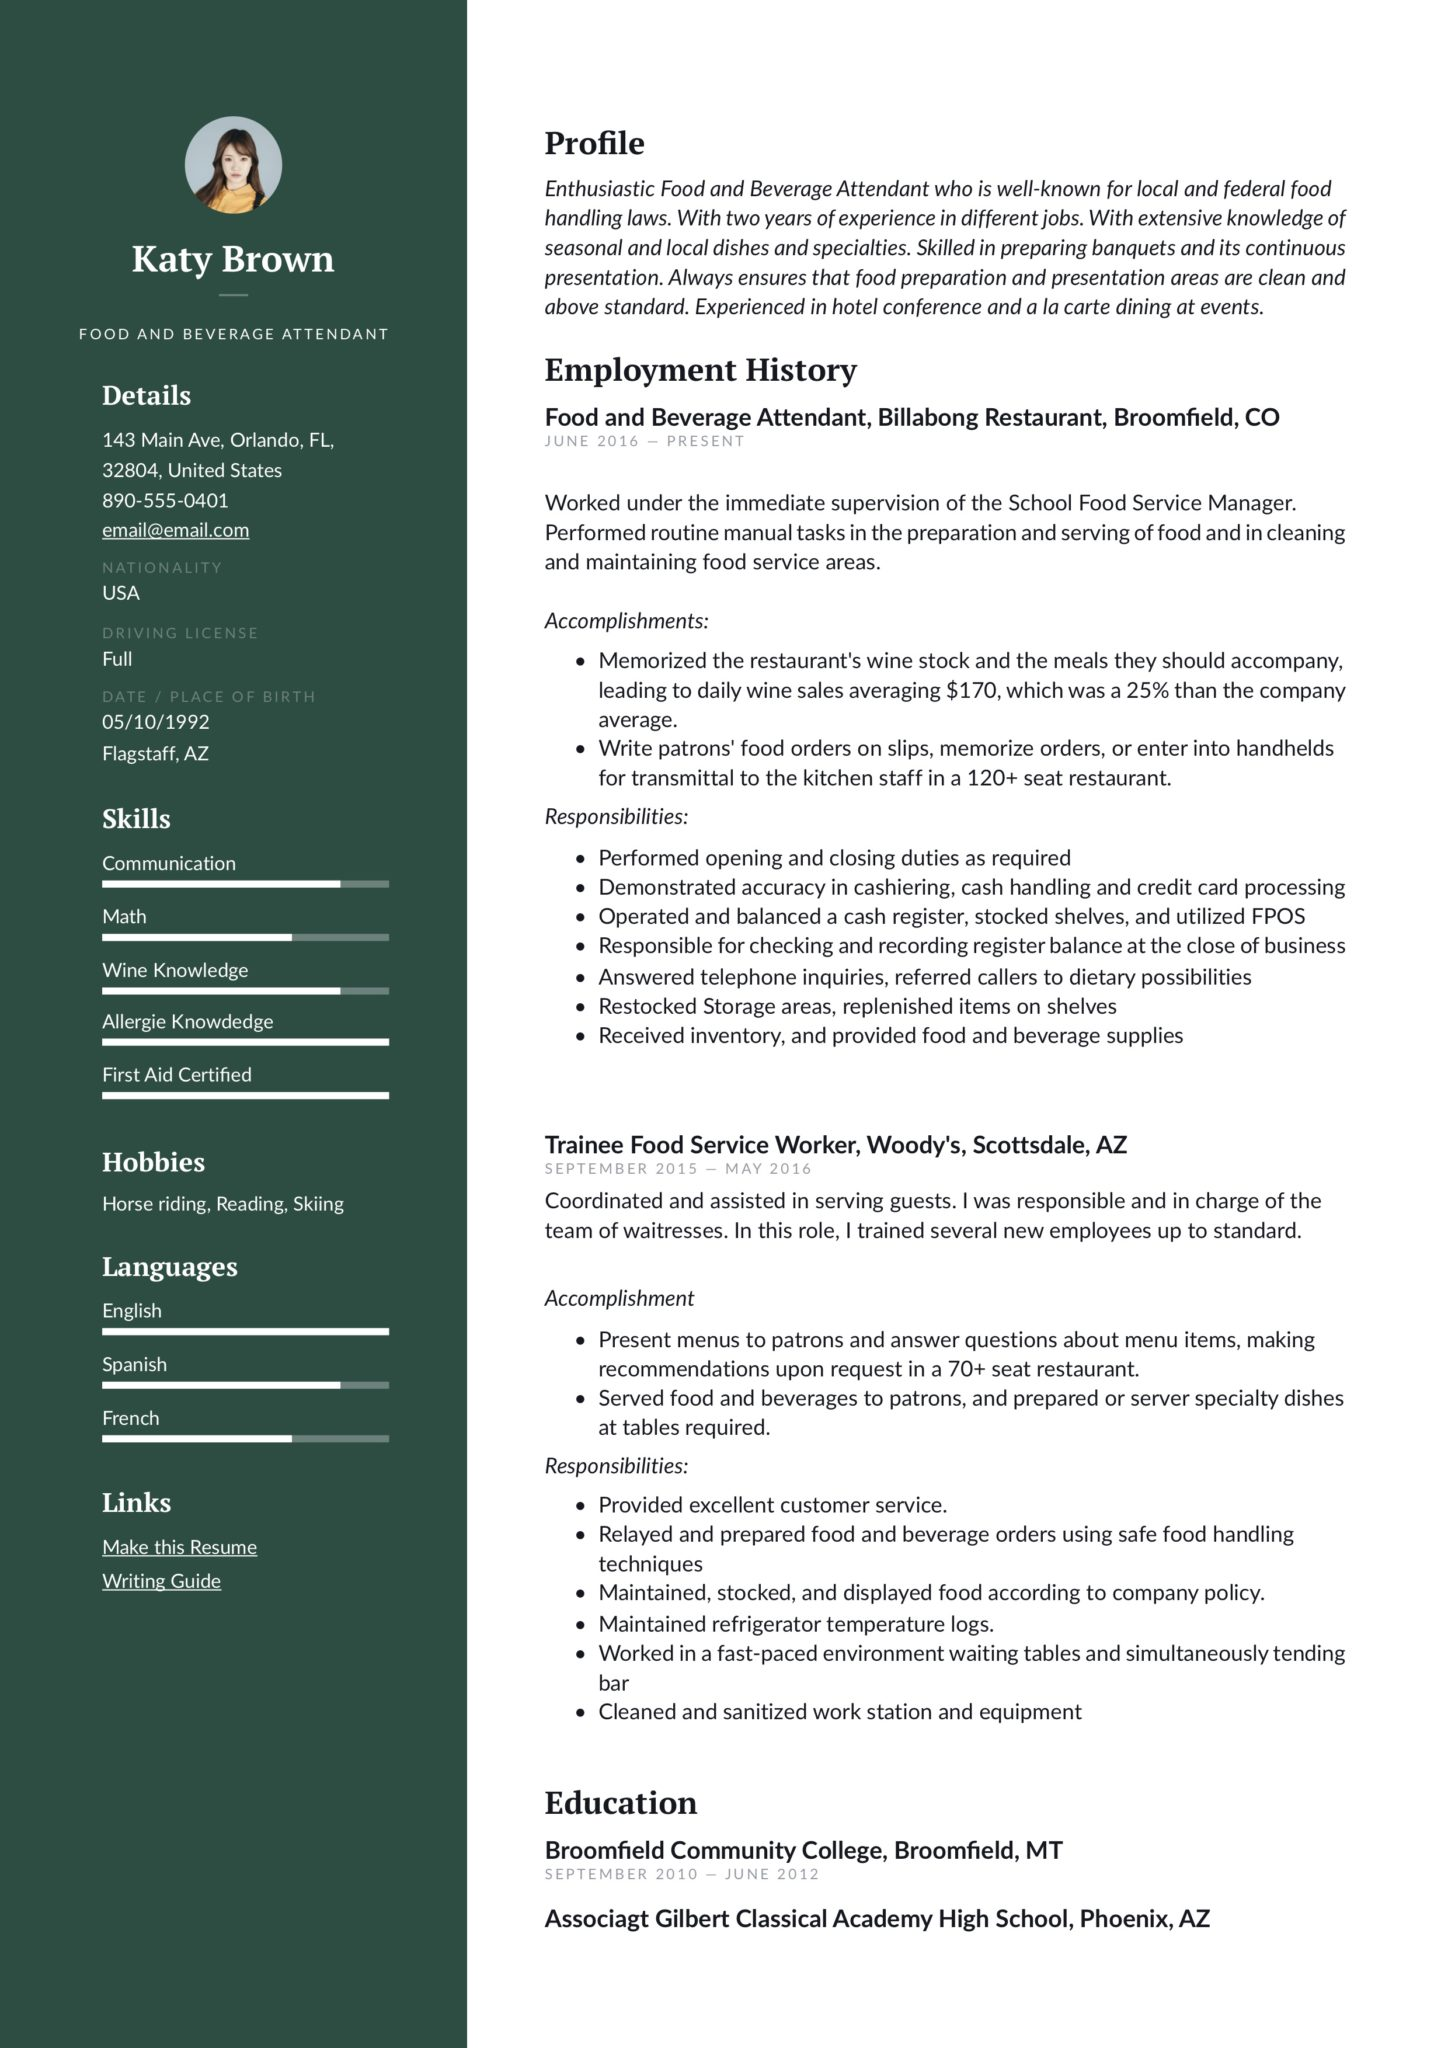 Green example resume food and beverage attendant